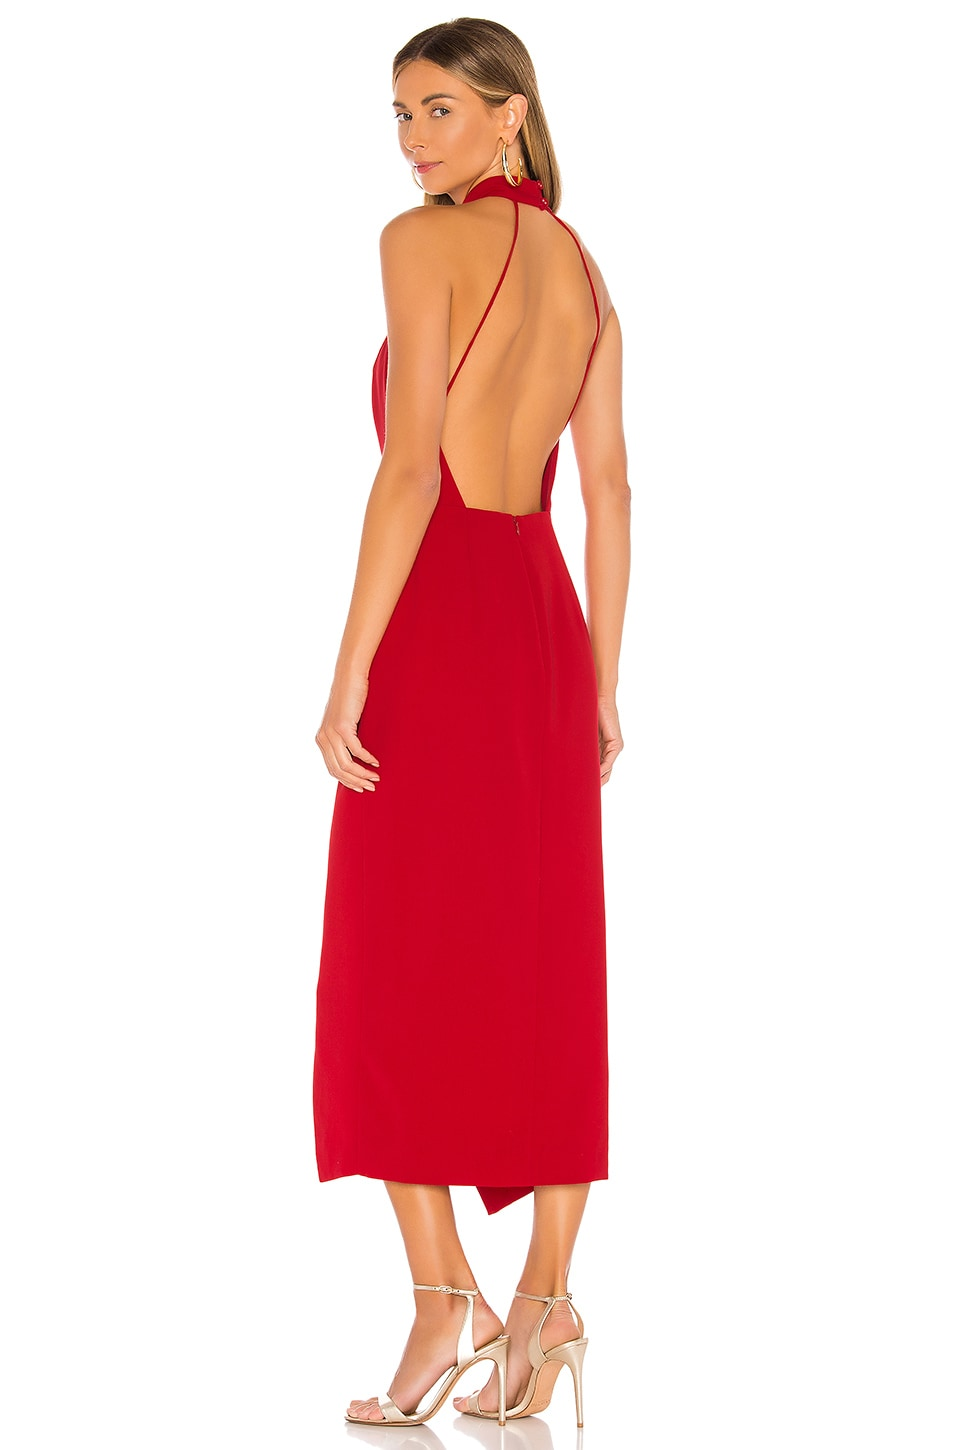 C/MEO Caliber Dress in Red